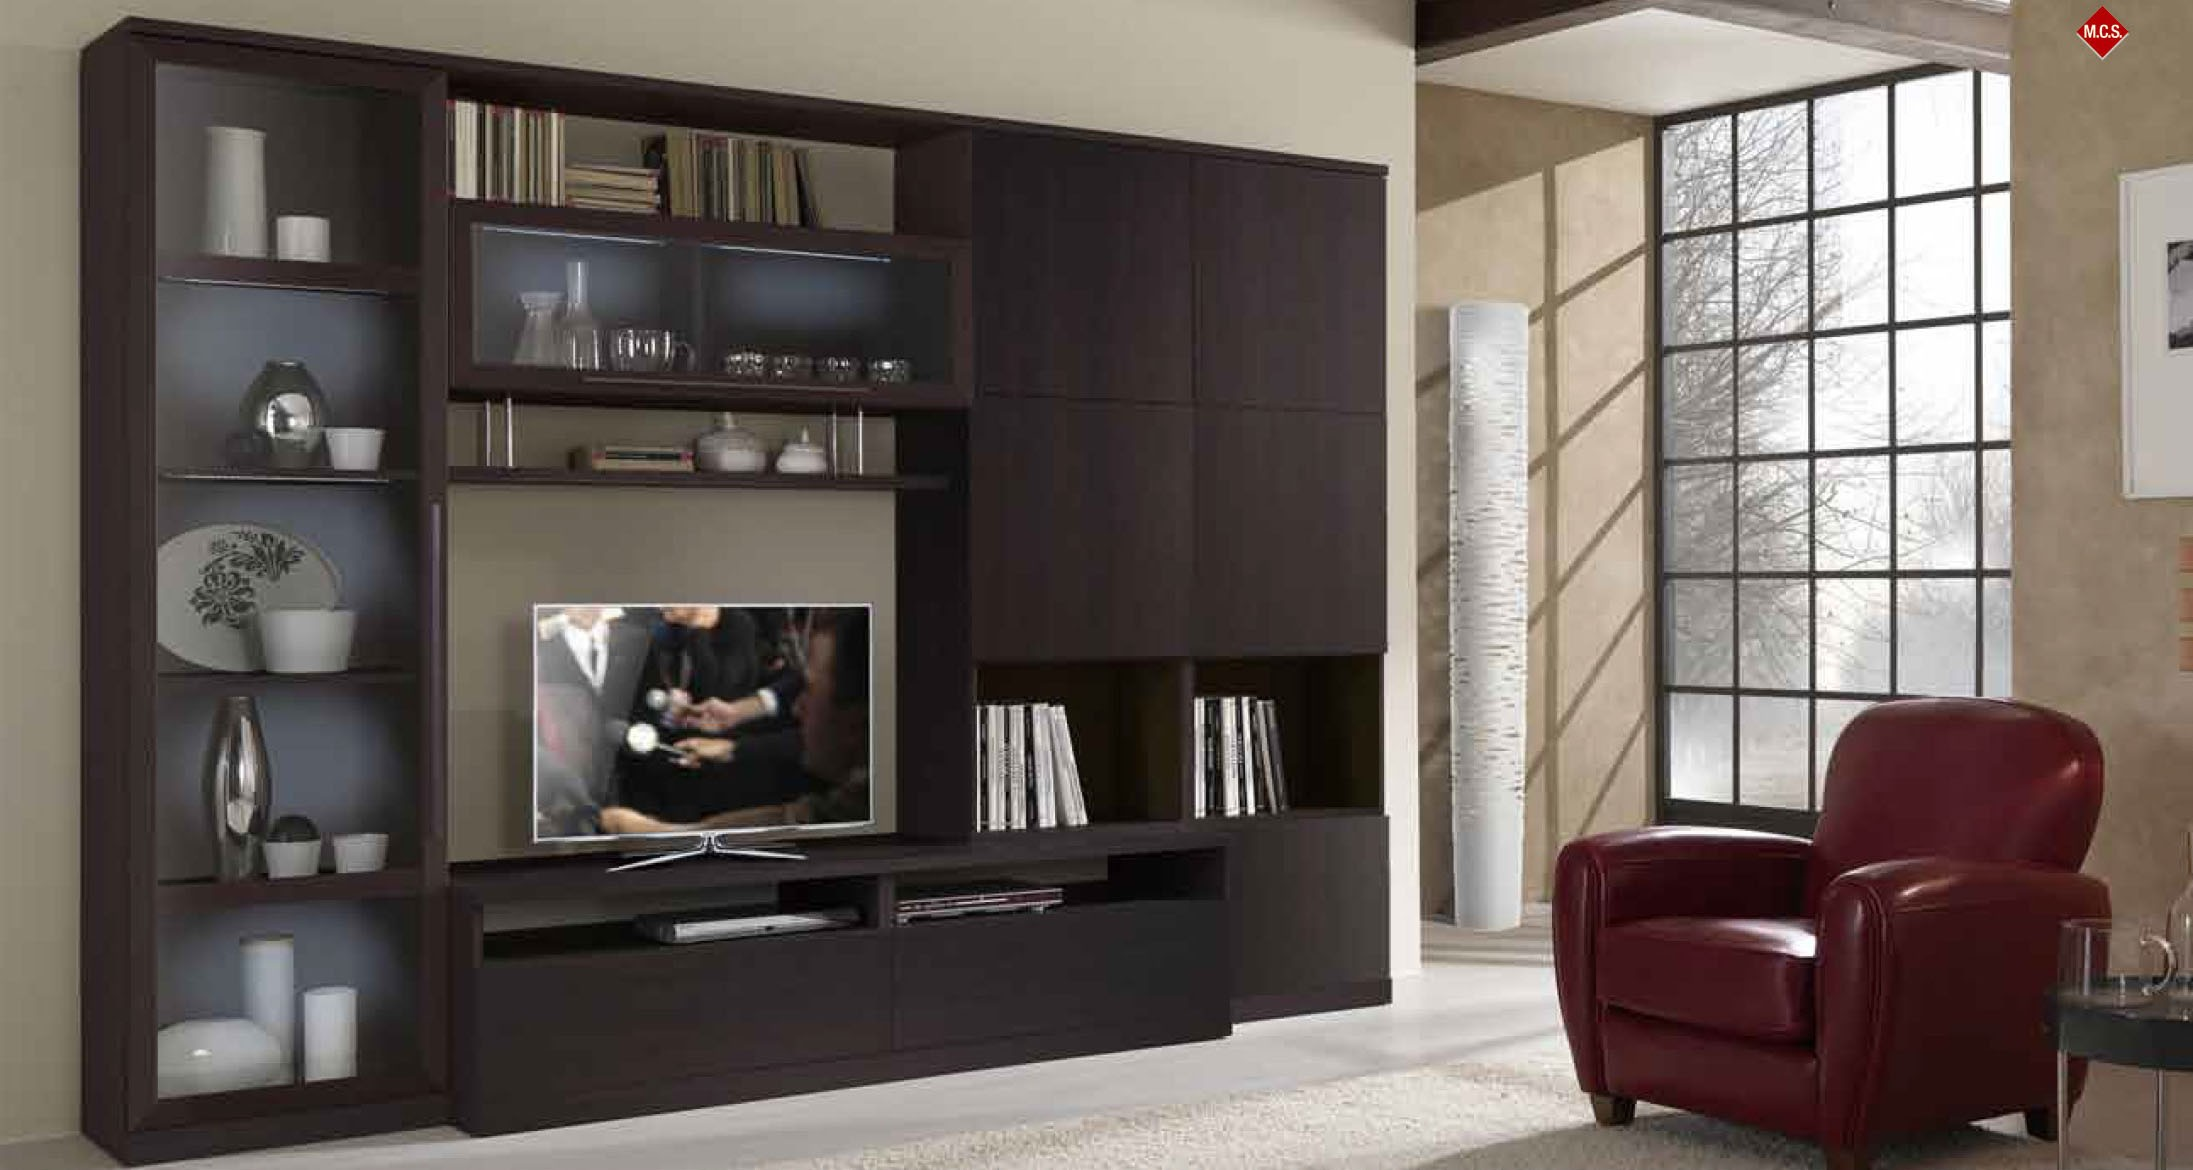 20 Modern TV Unit Design Ideas For Bedroom & Living Room ... on Living Room Wall Units id=67669